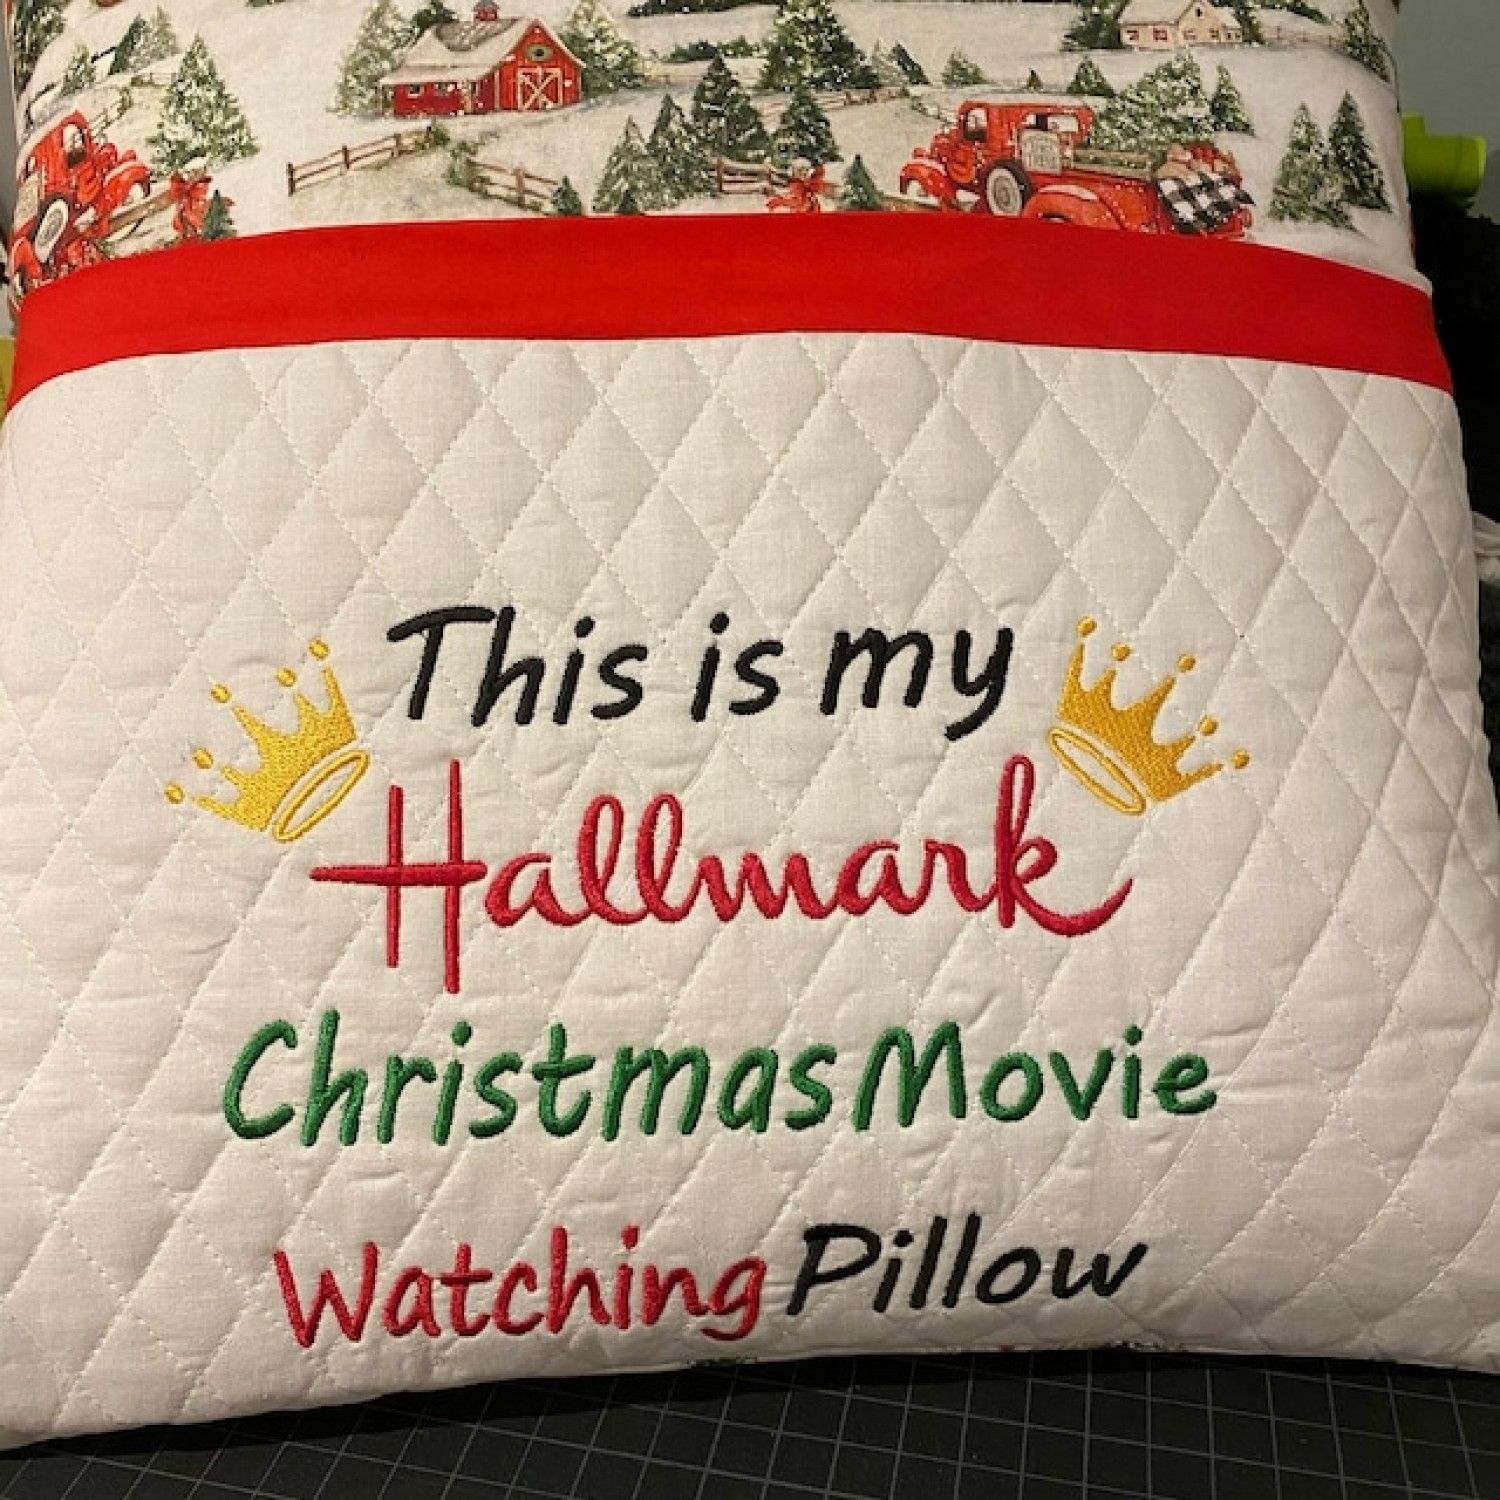 This is my hallmark pillow embroidery design